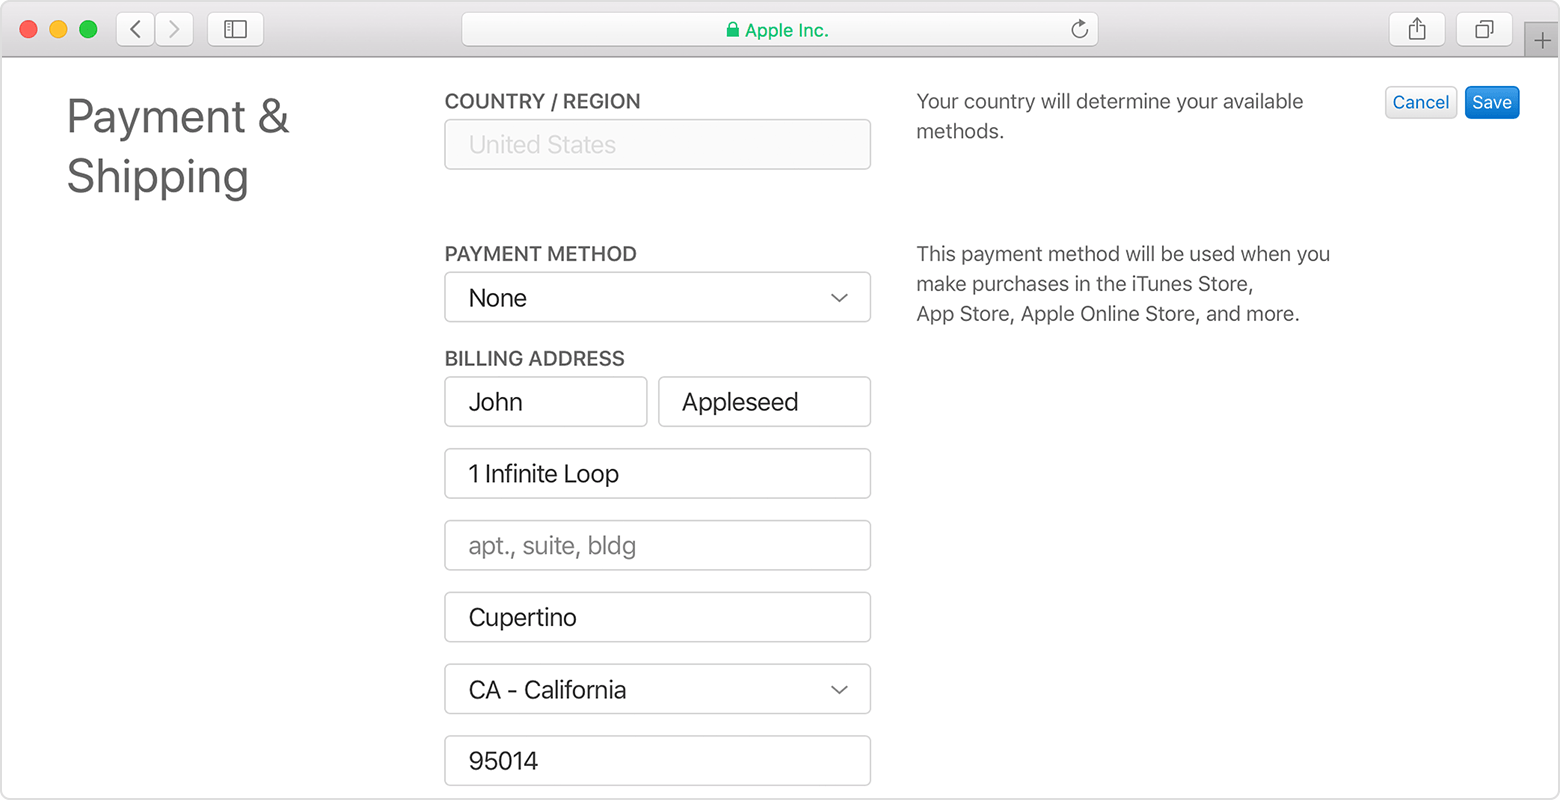 A Safari window showing the Payment and Shipping section of the Apple ID account page. It's being edited to change the payment method to None.